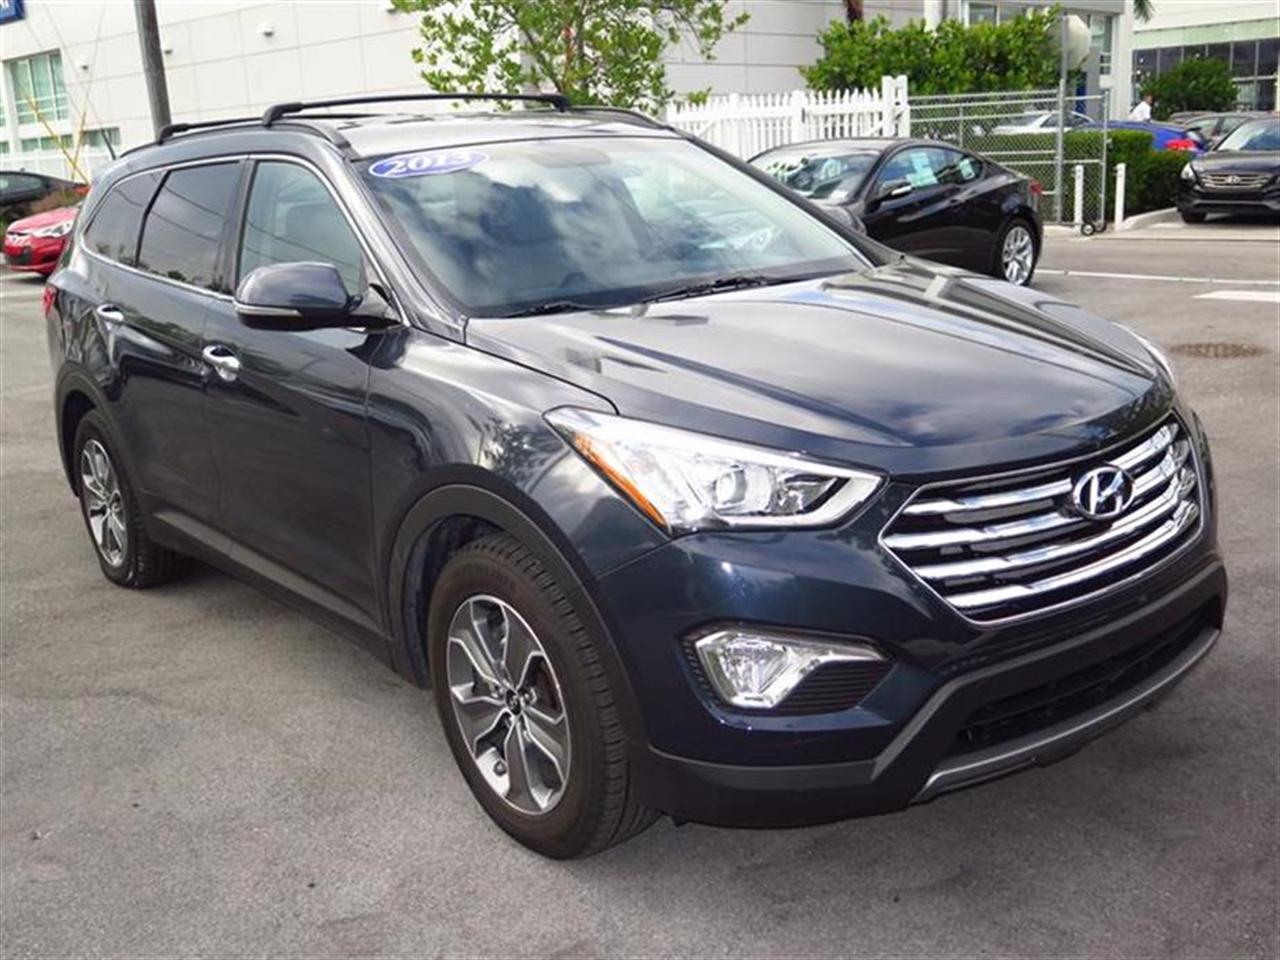 2013 HYUN SANTFE FWD 4dr GLS 19472 miles 2 occupant 3rd-row bench seat Active ECO system Air c